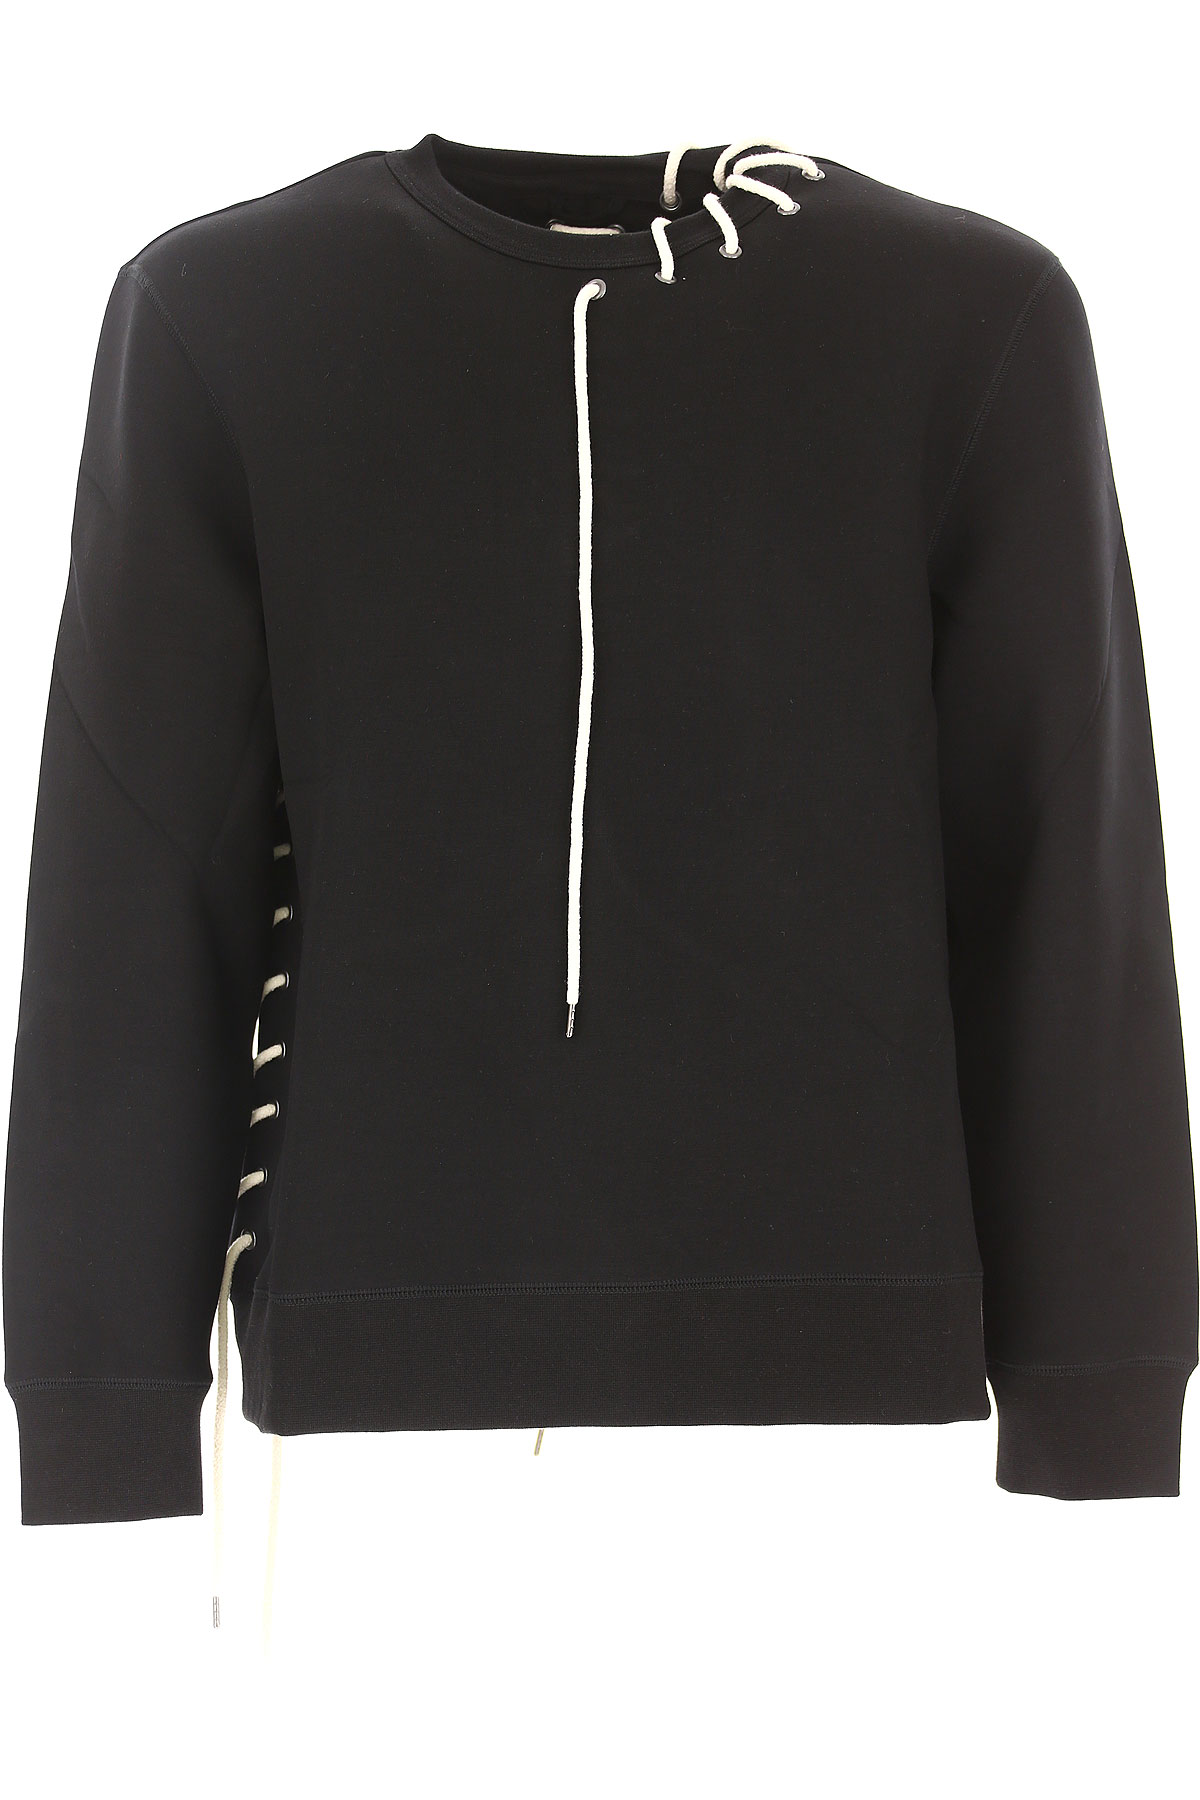 Image of Craig Green Sweatshirt for Men On Sale, Black, viscosa, 2017, L S